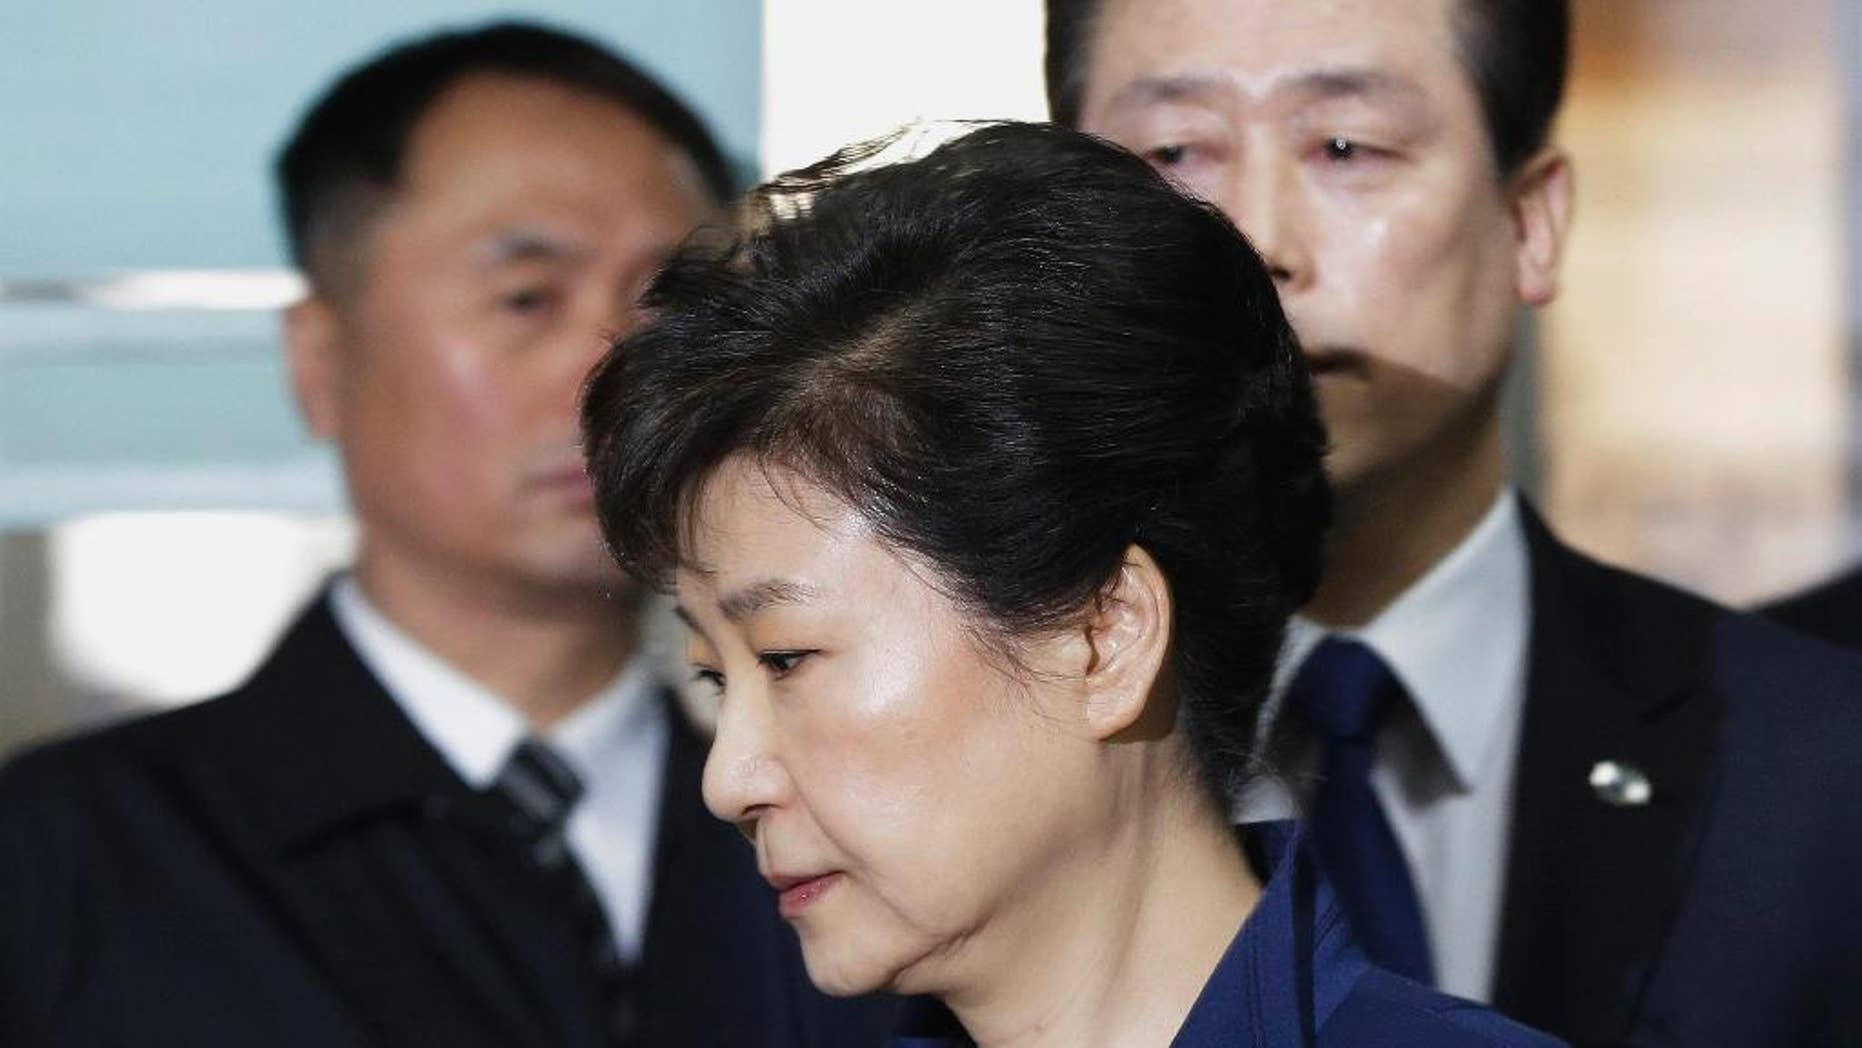 FILE - In this March 30, 2017 file photo, ousted South Korean President Park Geun-hye arrives at the Seoul Central District Court for hearing on a prosecutors' request for her arrest for corruption, in Seoul, South Korea. South Korean prosecutors say they expect to indict former President Park early next week, over corruption allegations. Park has been jailed at a detention center near Seoul since she was arrested late last month over the allegations.  An official at the Seoul prosecutors' office said that Wednesday, April 12, 2017,  that Park will likely be indicted April 17 but didn't elaborate on what charges she will face. (AP Photo/Ahn Young-joon, Pool, File)